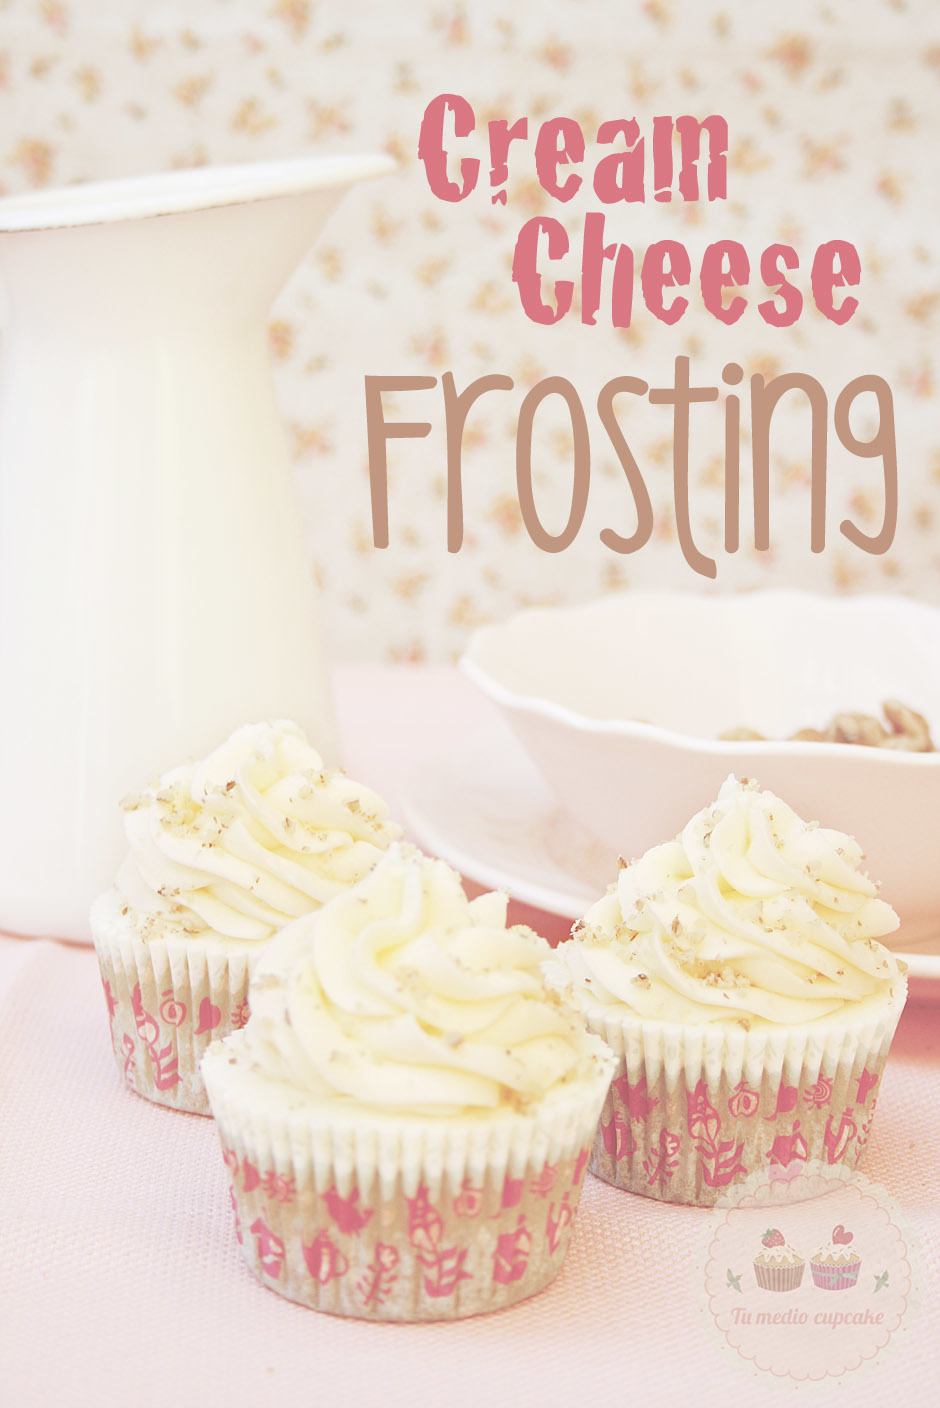 Cream Cheese Frosting perfecto para decorar!